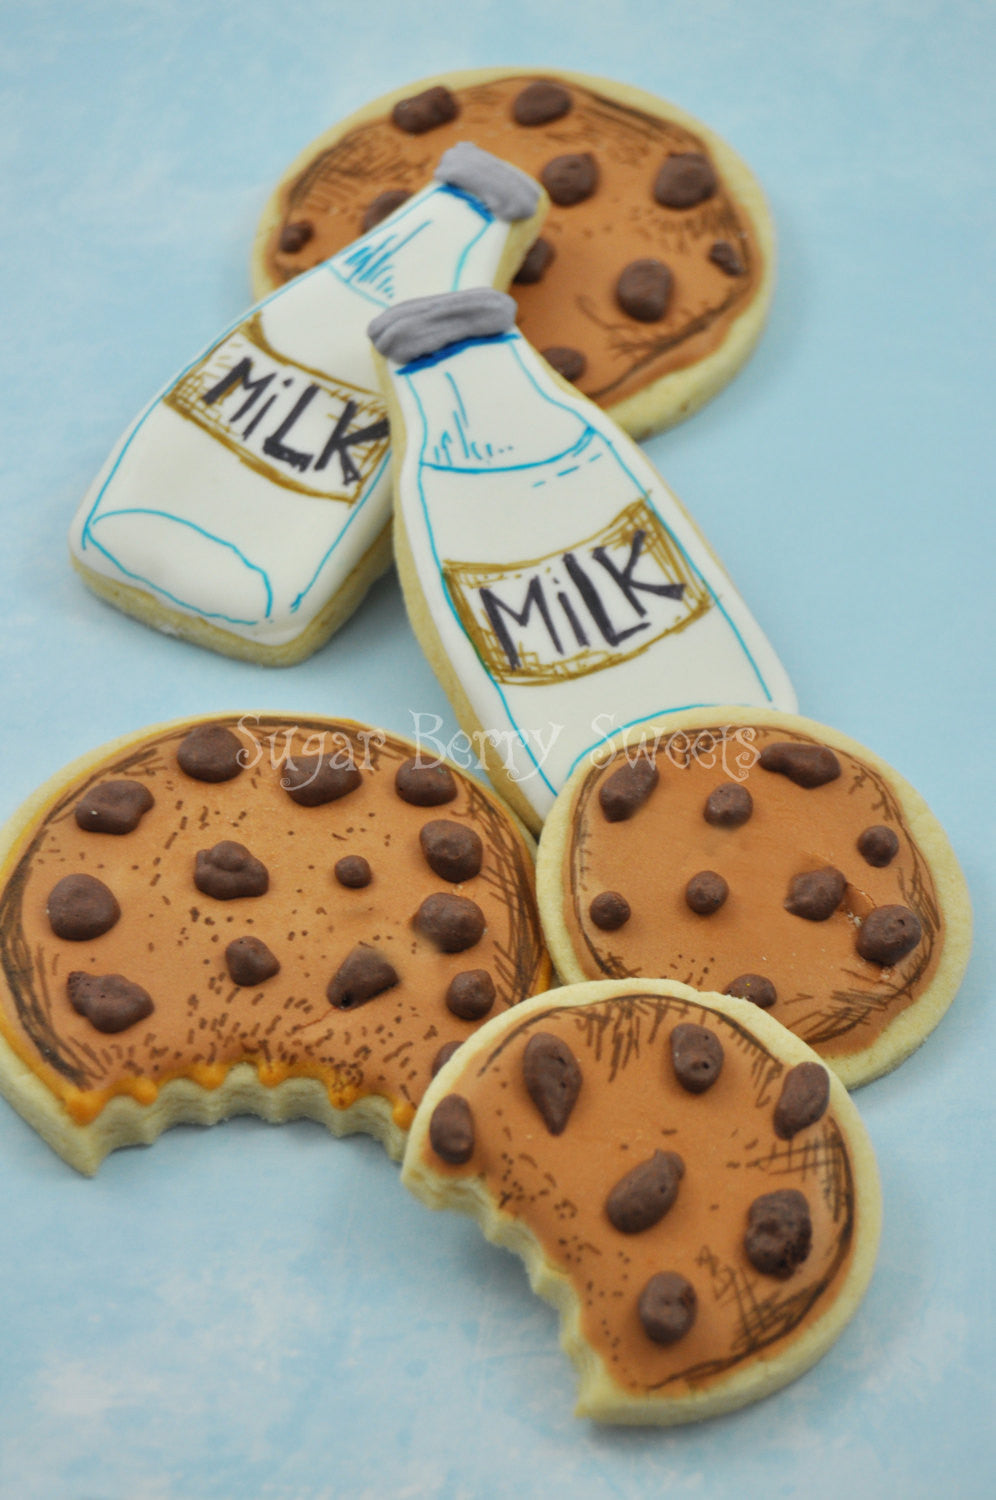 Milk And Cookie Birthday Party Sugar Cookies TheIcedSugarCookie.com Sugar Berry Sweets